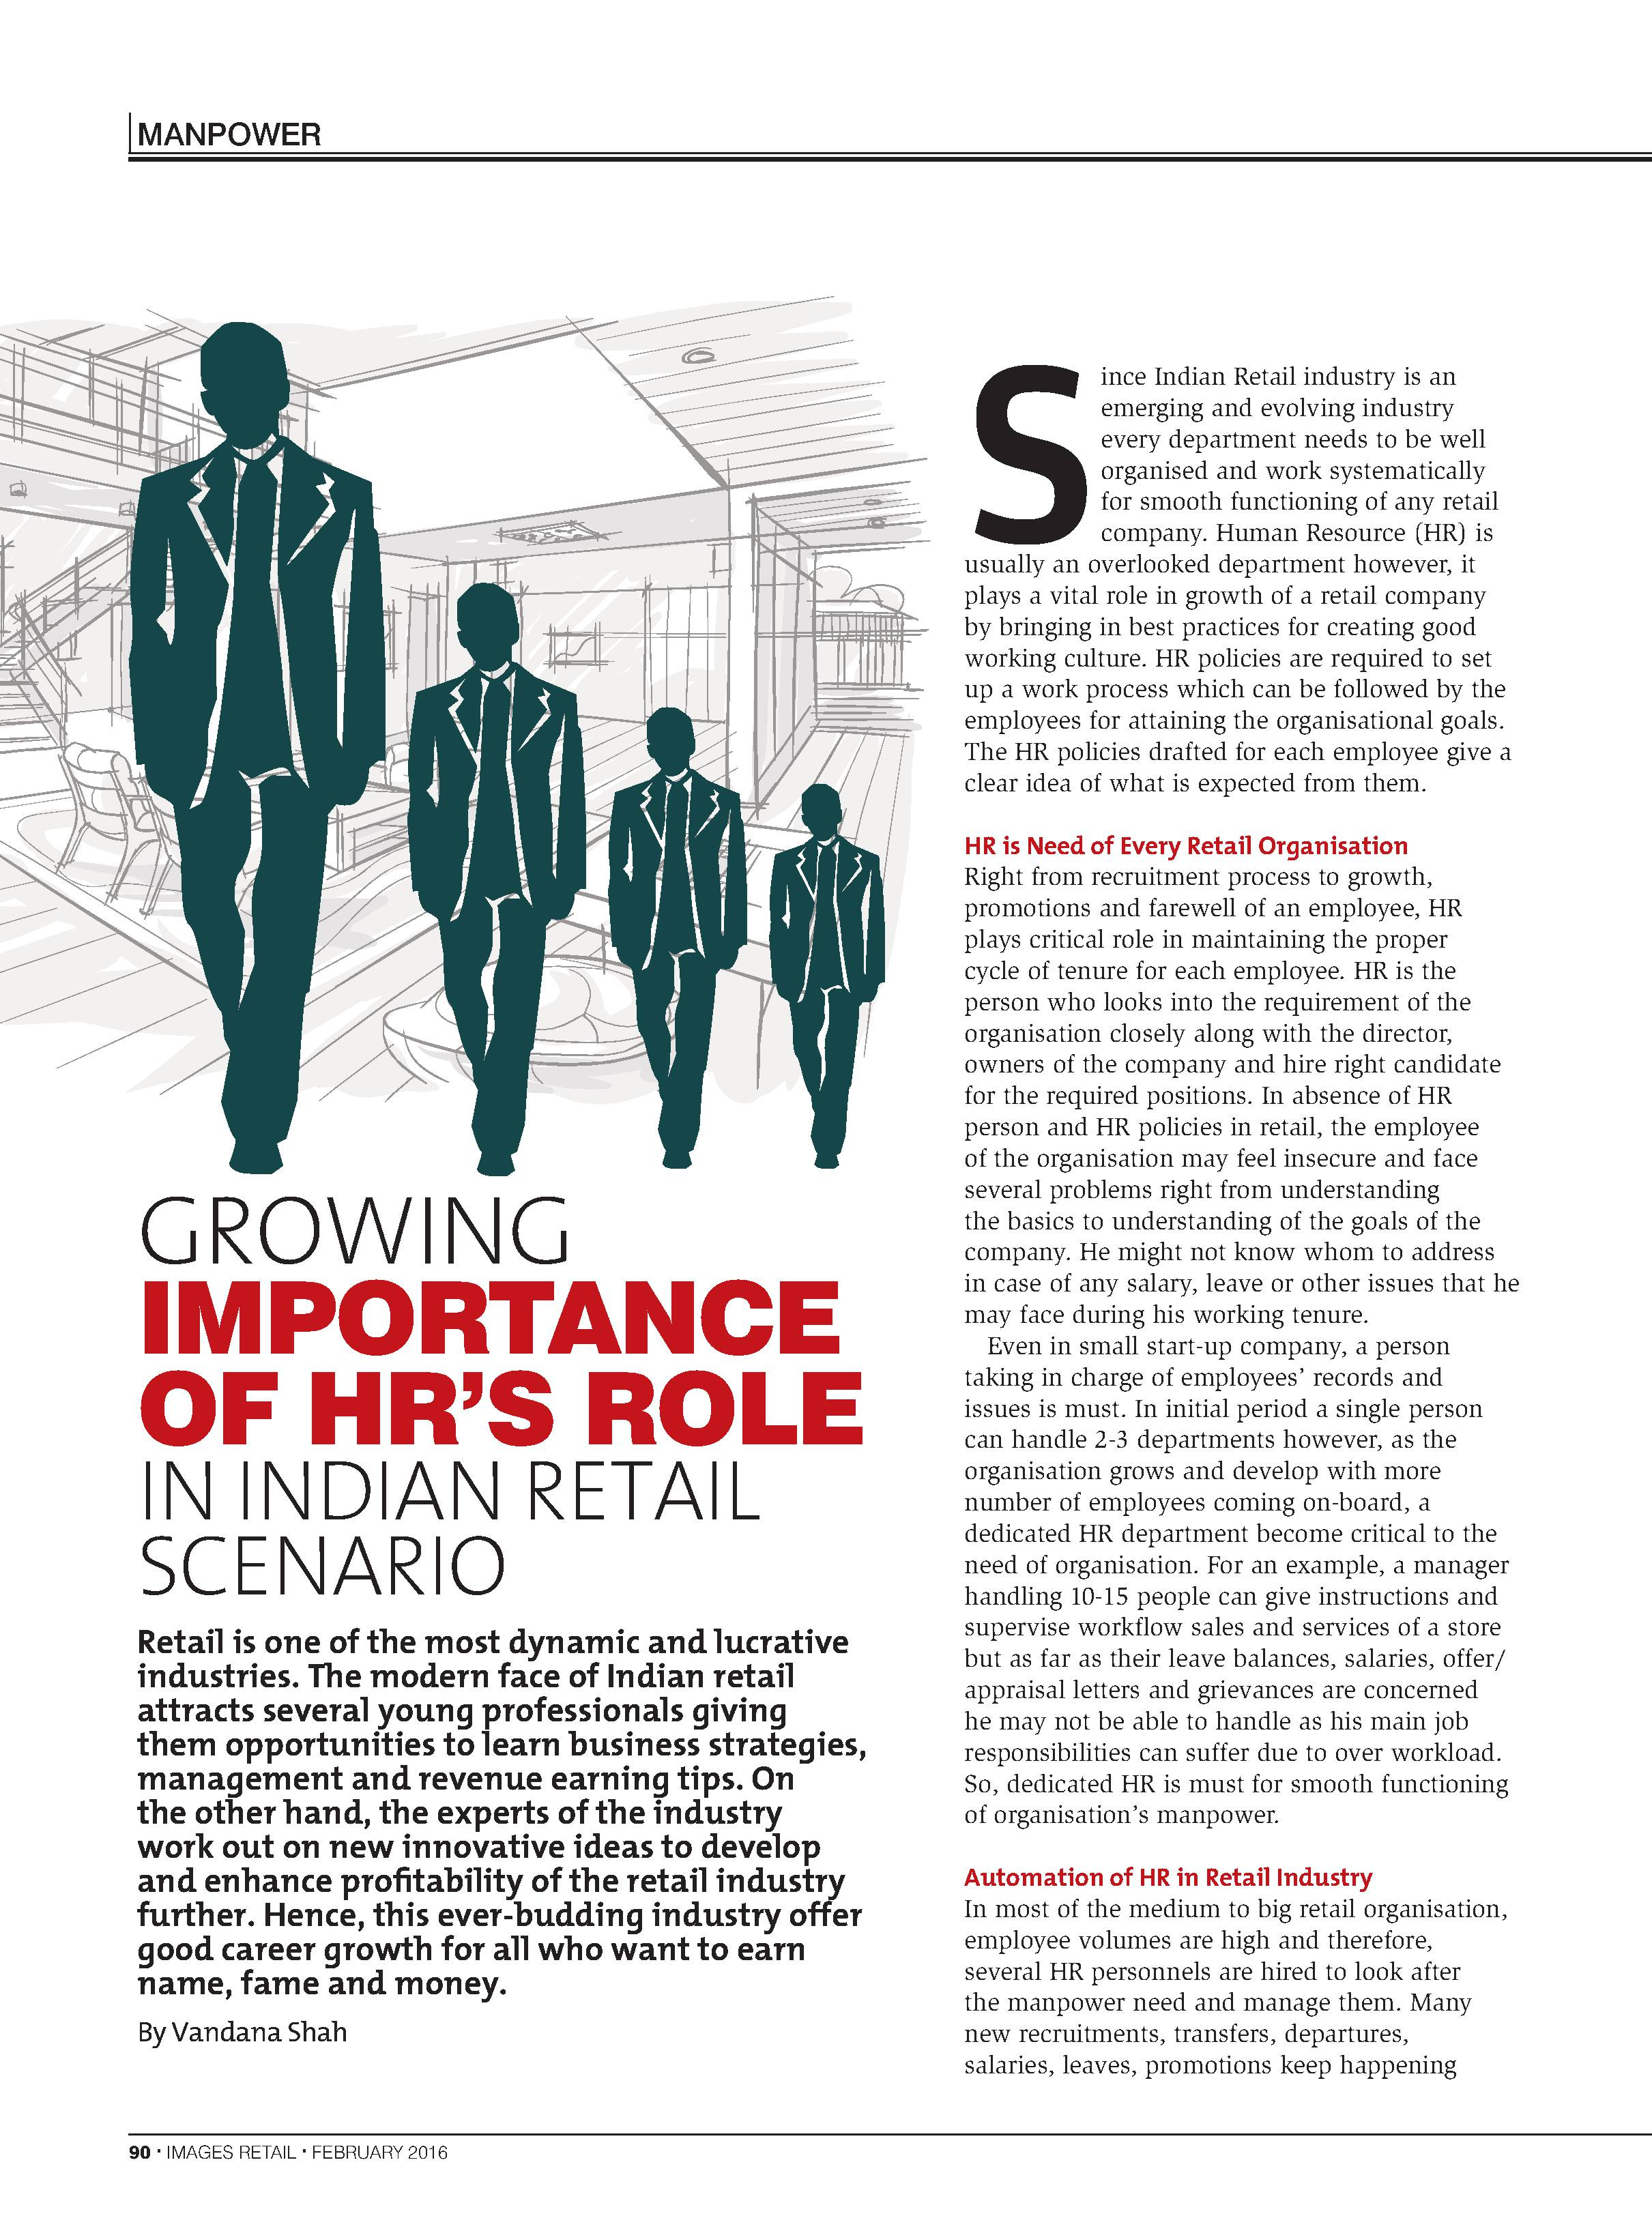 Importance of HR's Role in Indian Retail Scenario